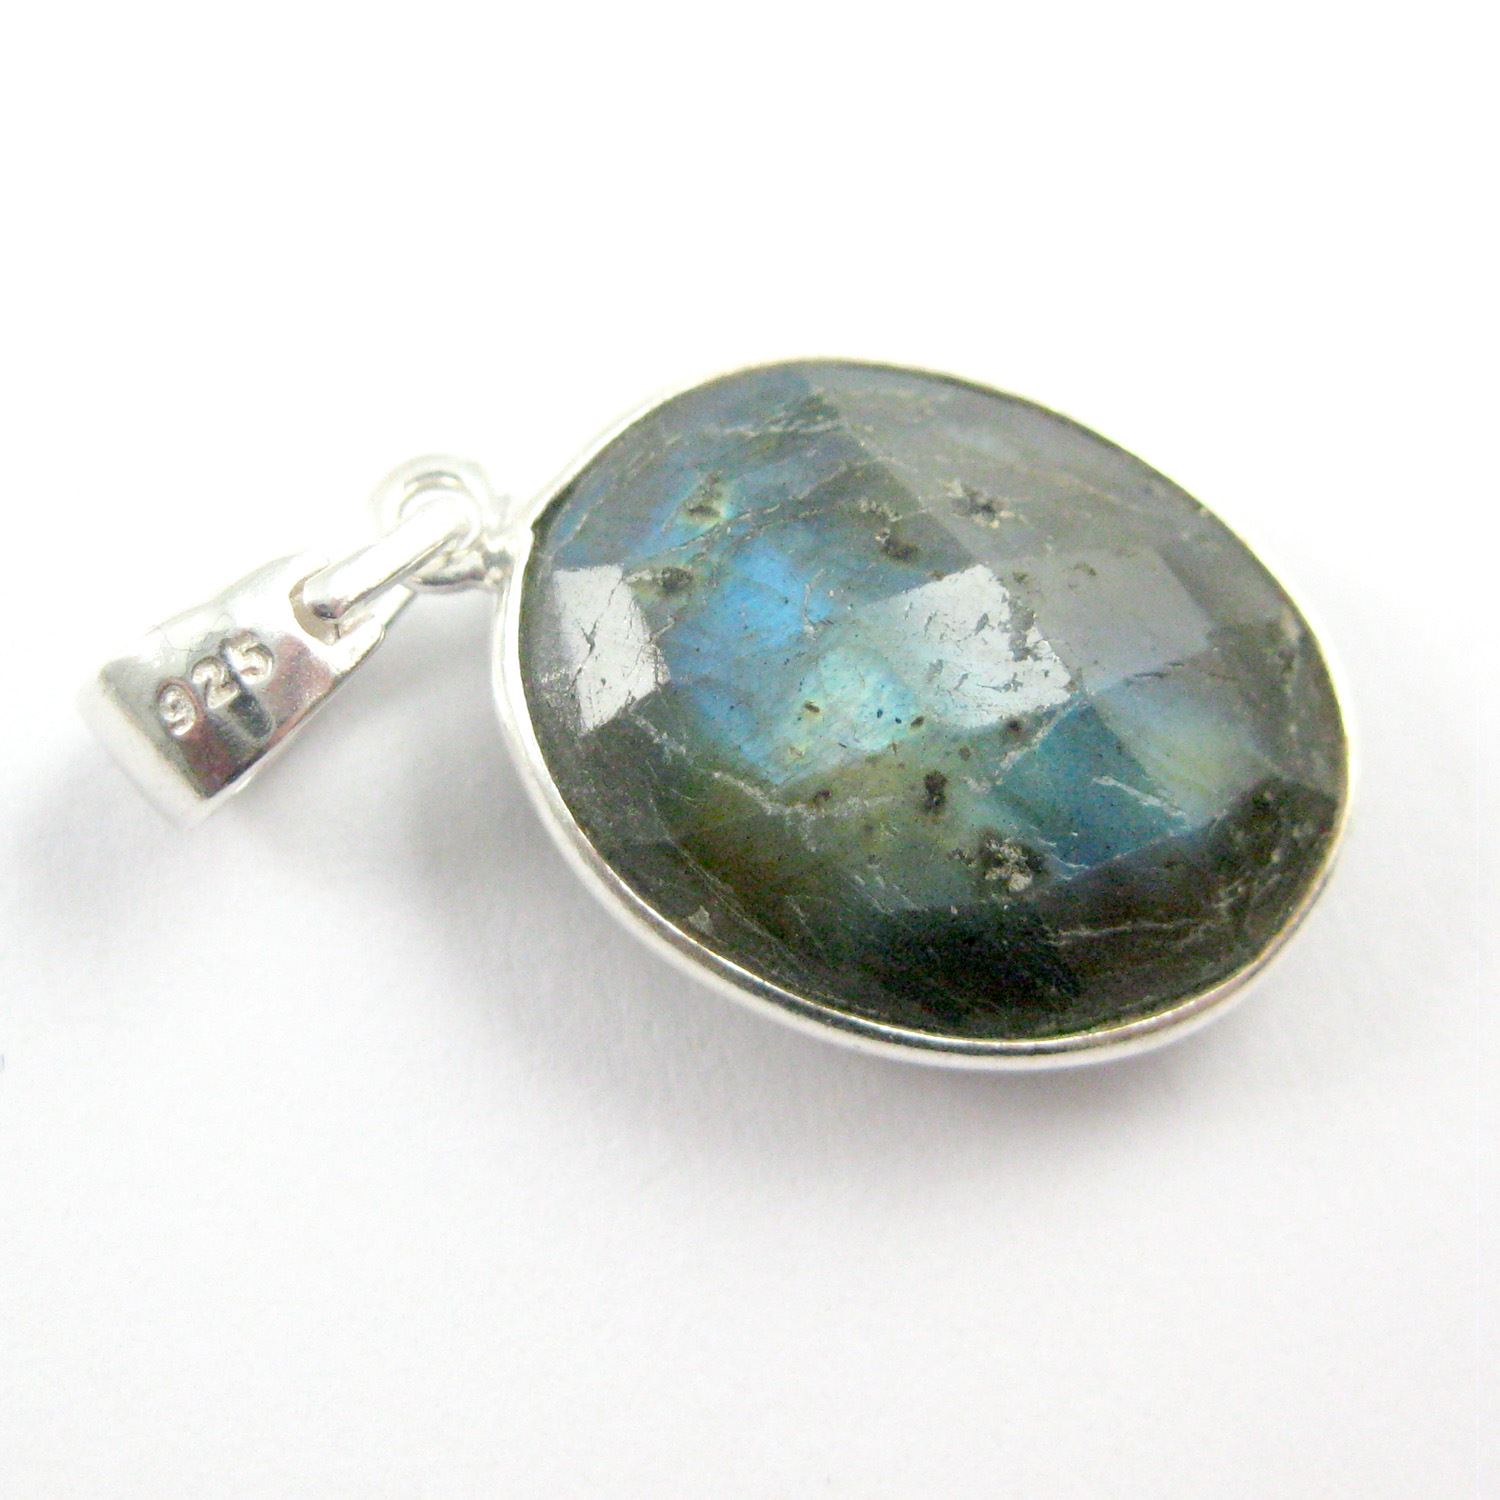 Bezel Gemstone Pendant with Bail - Sterling Silver Oval Gem Pendant - Ready for Necklace - 28mm - Labradorite